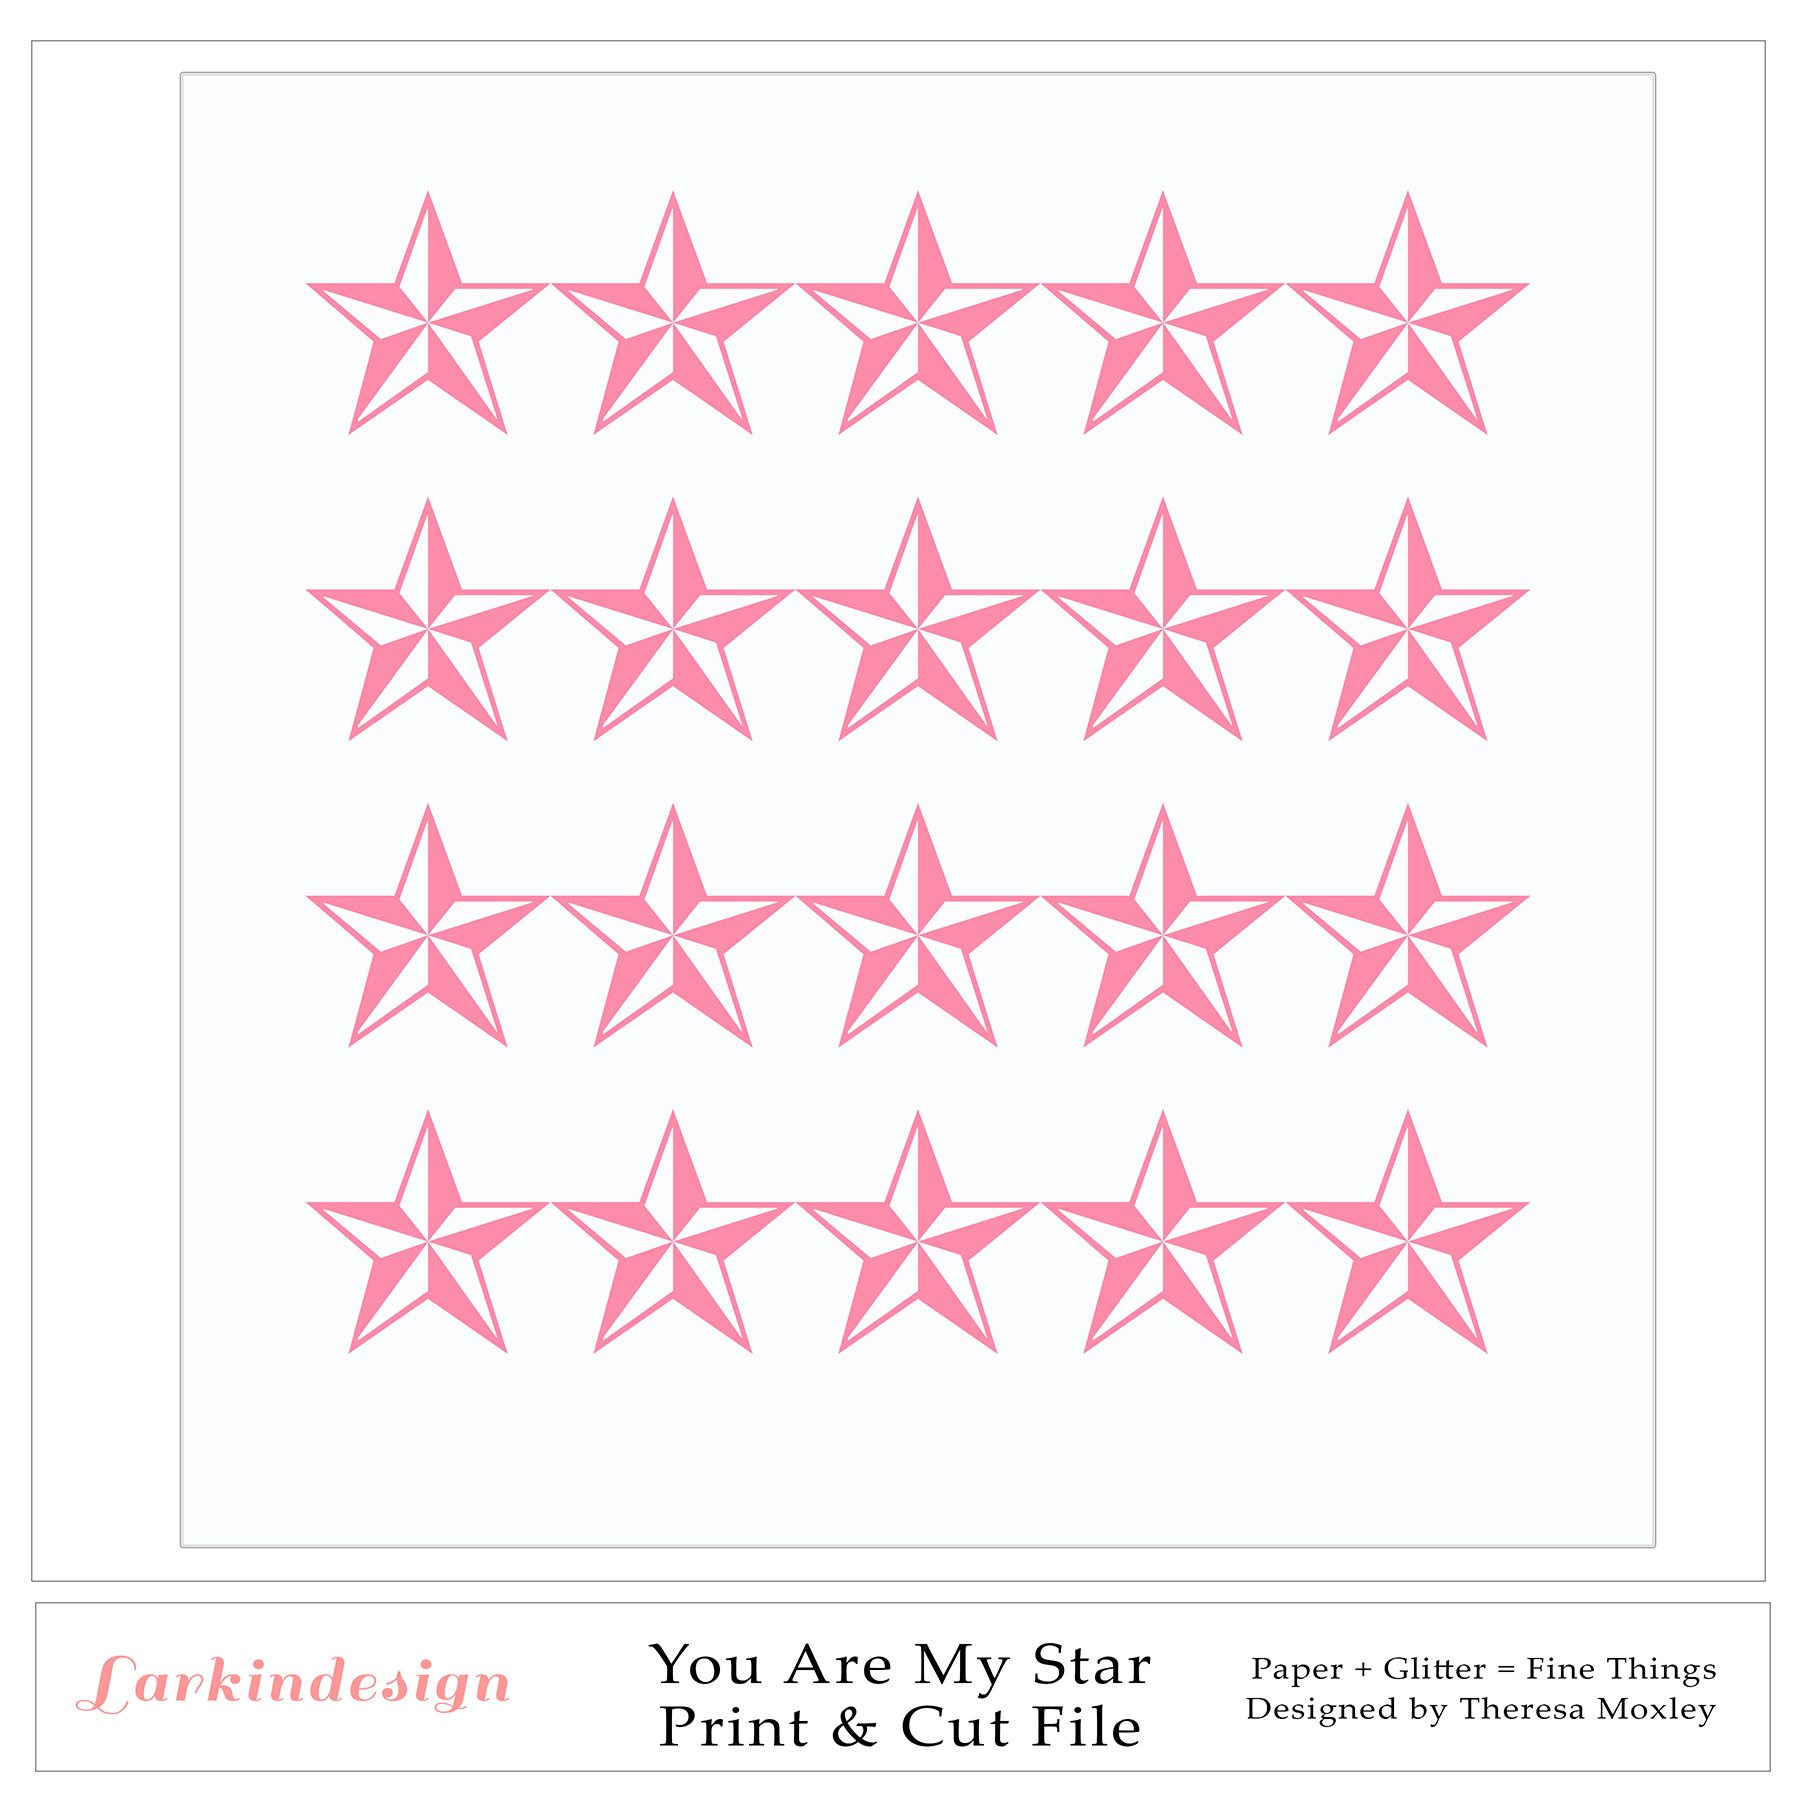 You Are My Star Digital Print and Cut File